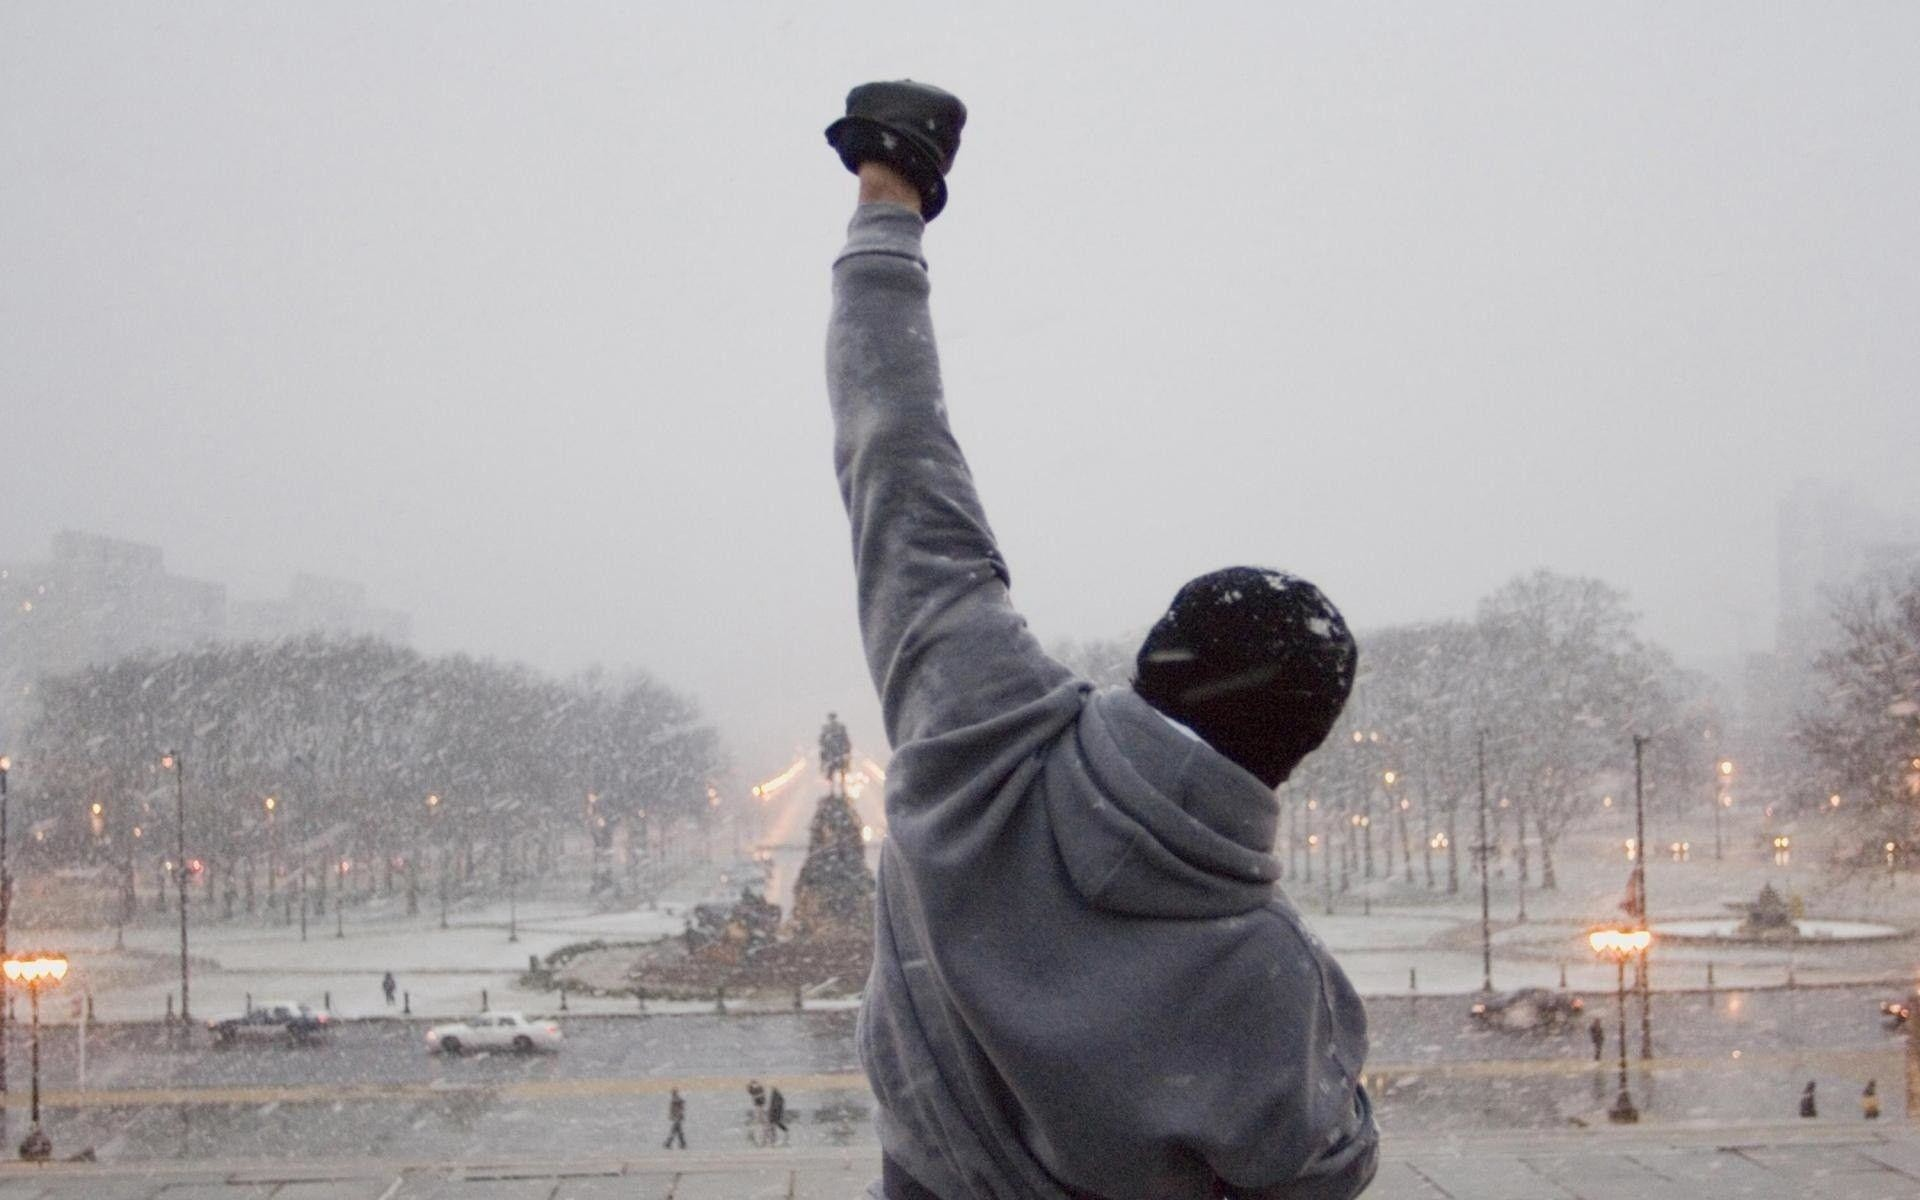 Sylvester Stallone As Rocky Balboa Wallpaper Wide or HD | Male .